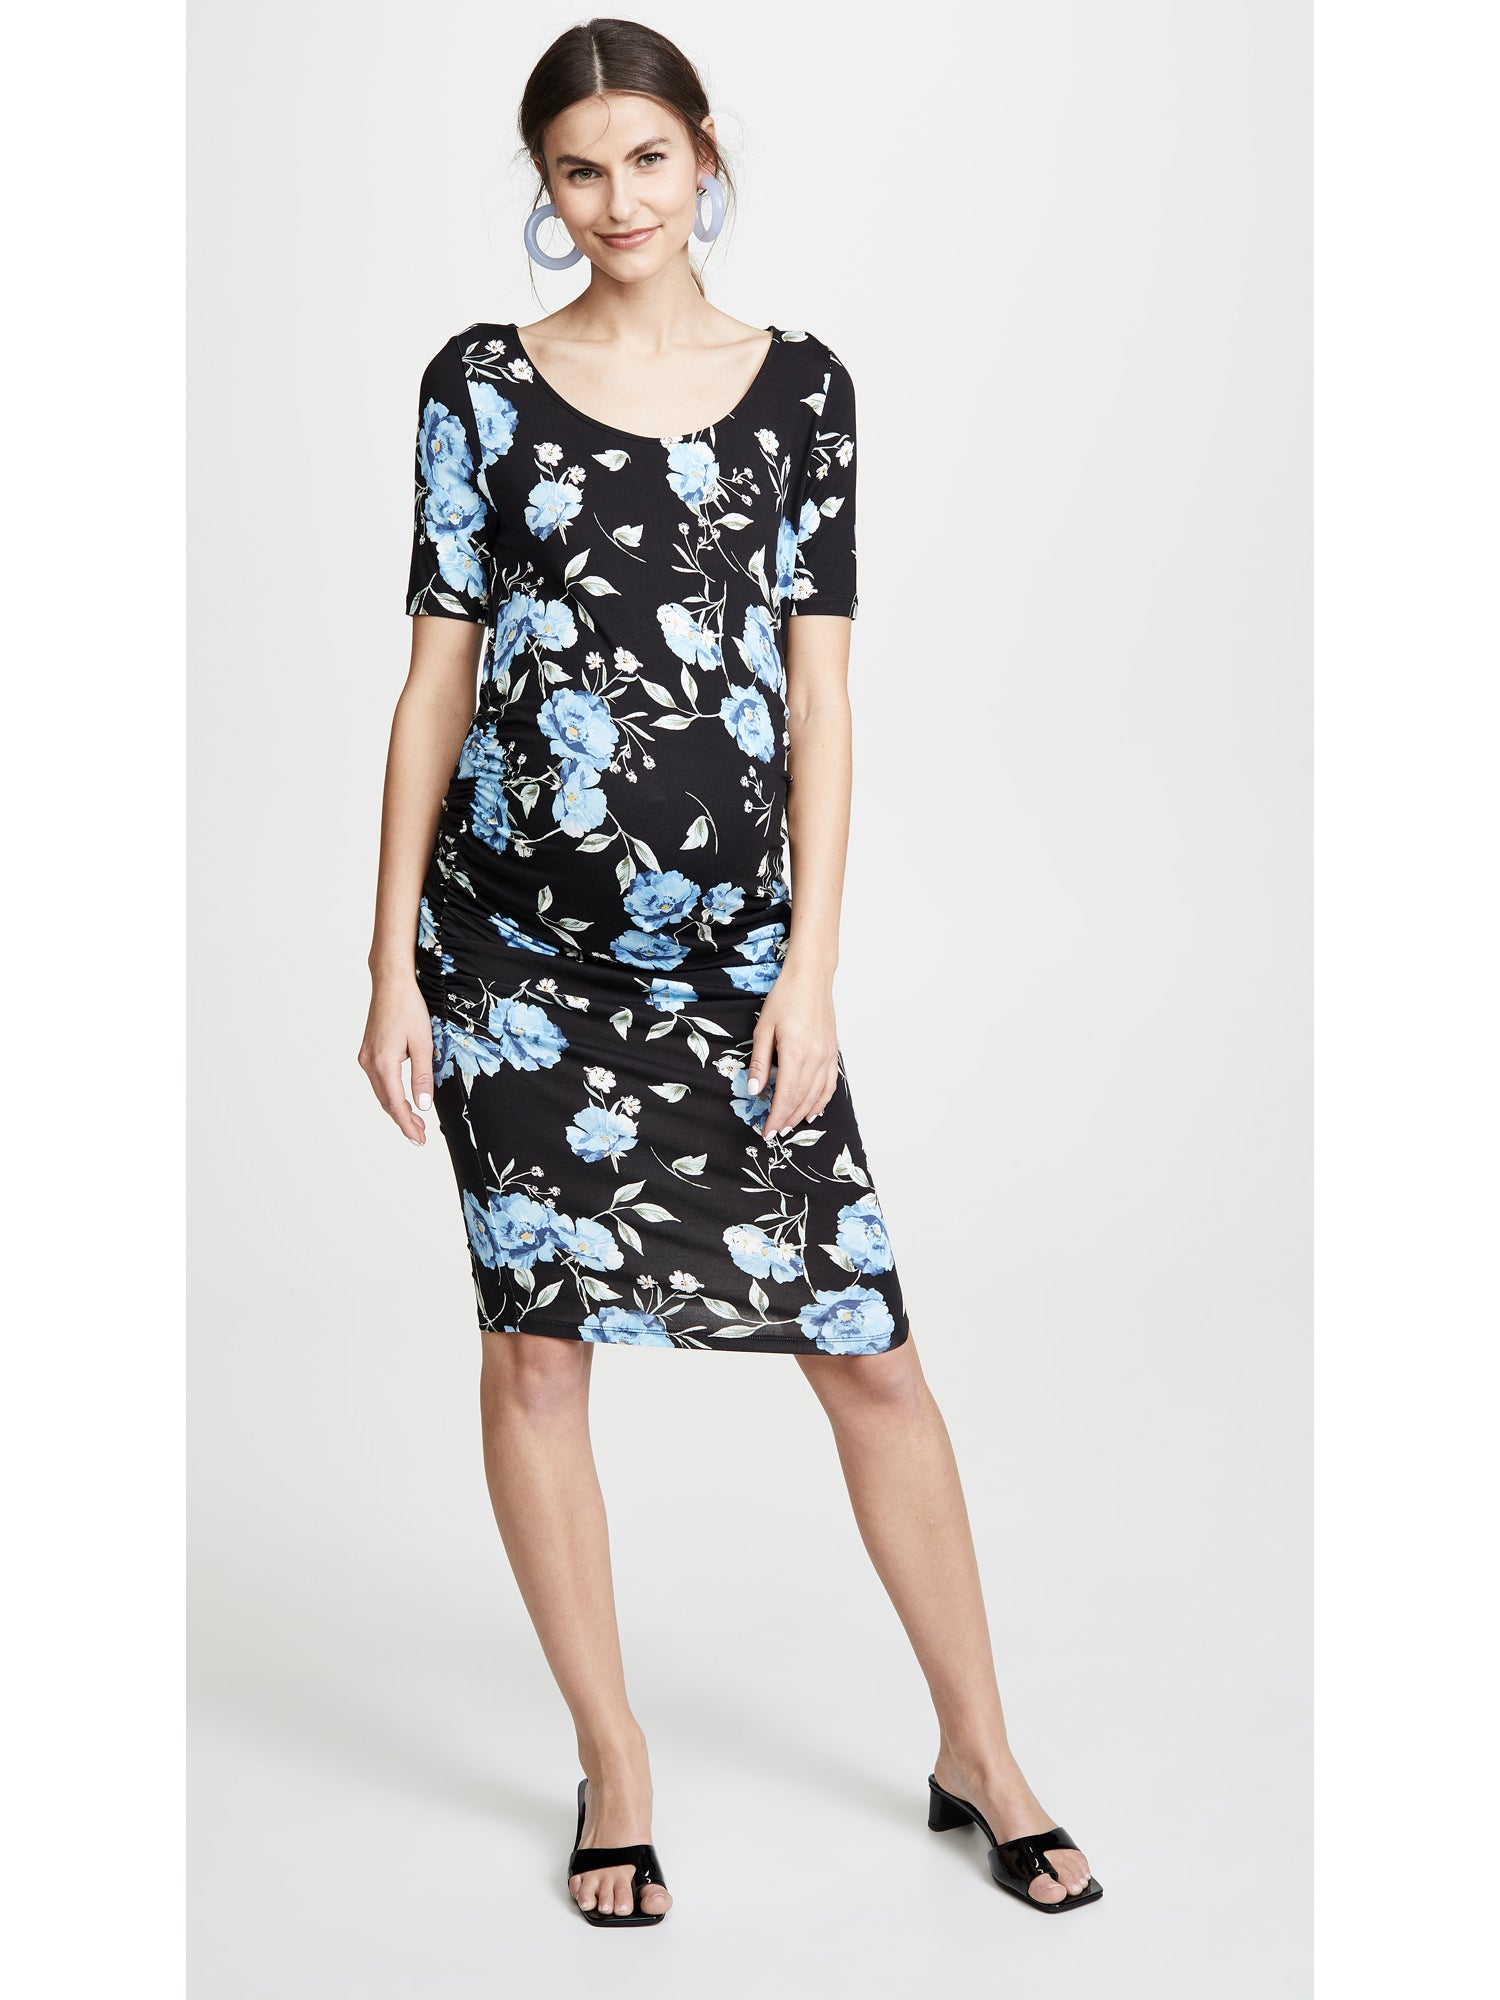 Yumi Kim Blossom Maternity Dress - Moonlight Bay Floral Print | TILDEN